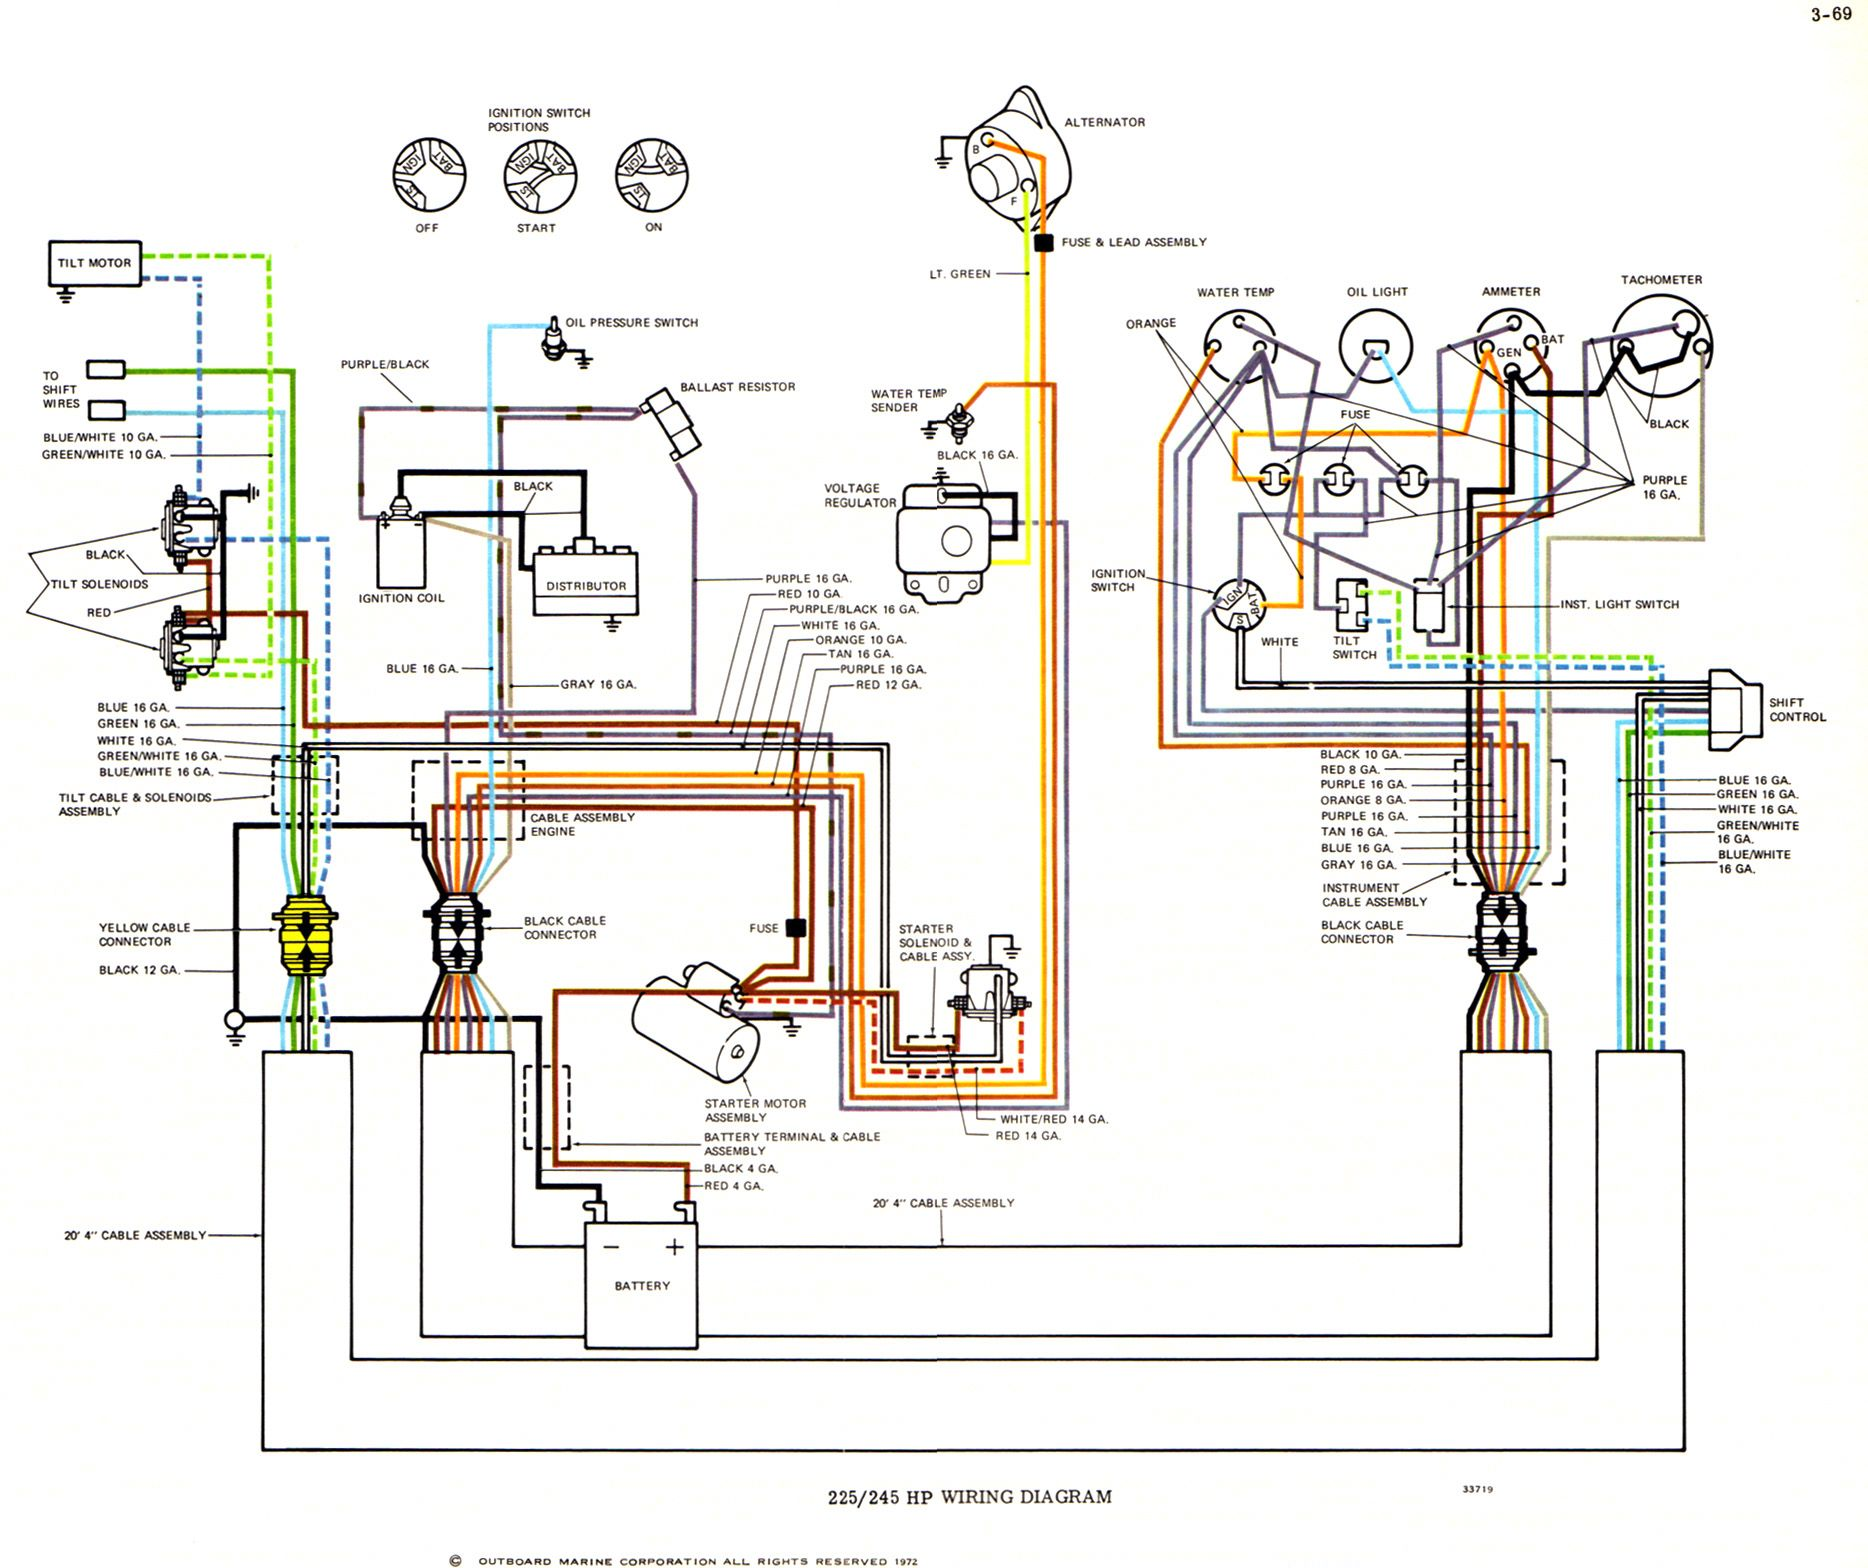 Simple House Wiring Diagram Kunertdesign Com Simple House - Wiring Diagram